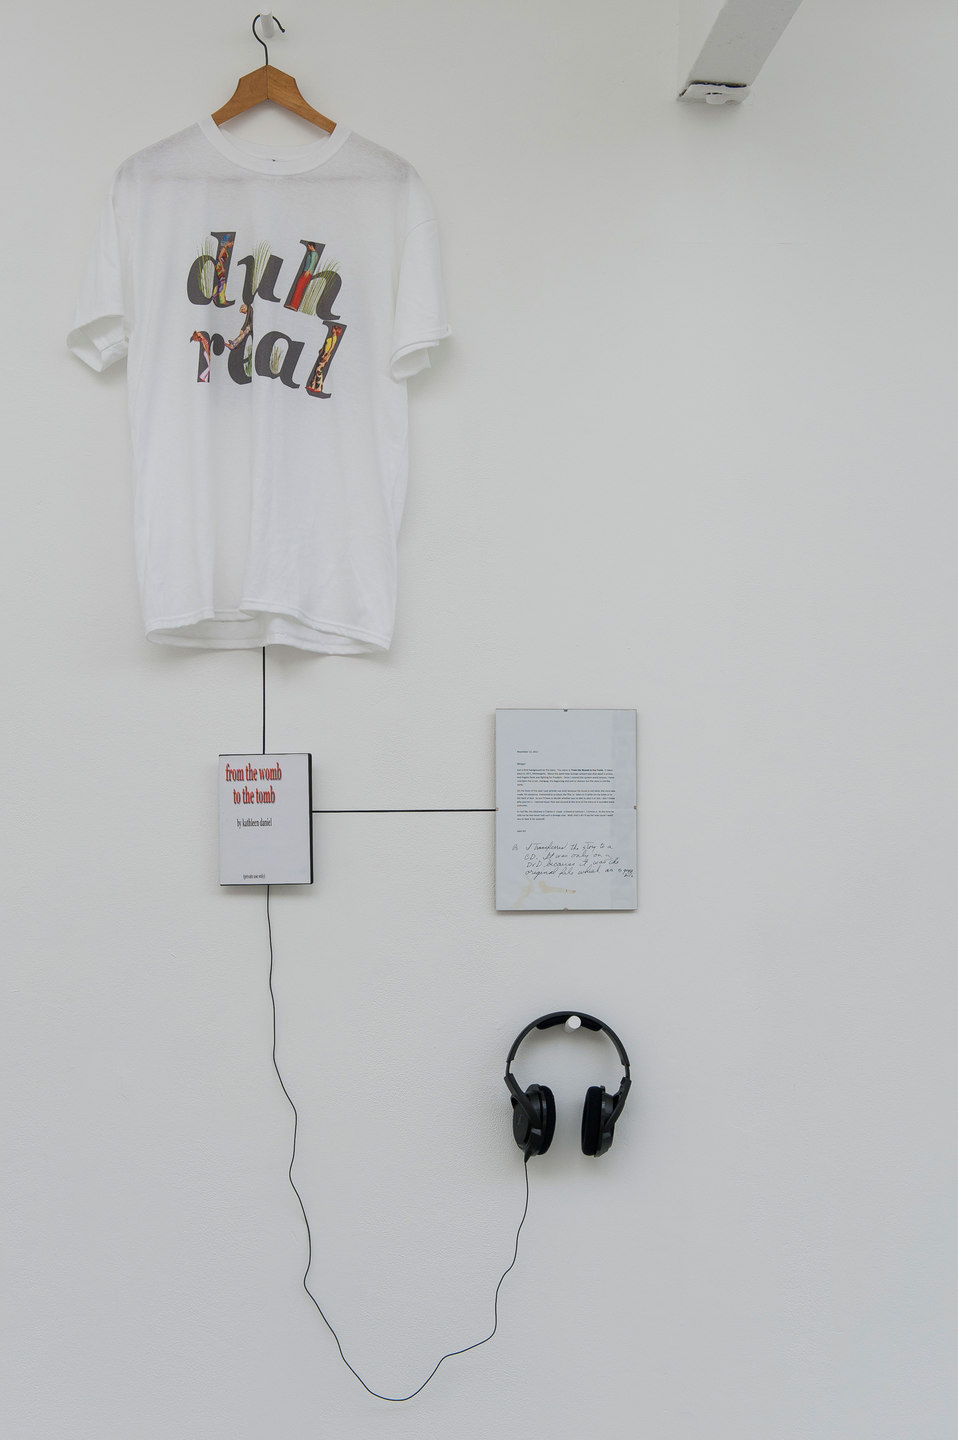 Kathleen Daniel, From the Womb to the Tomb, 2012, mp3 file, duration 51 mins 30 secs, digital print on DVD box cover, digital print on T-shirt, framed letter from the artist to the curator, Cell Project Space